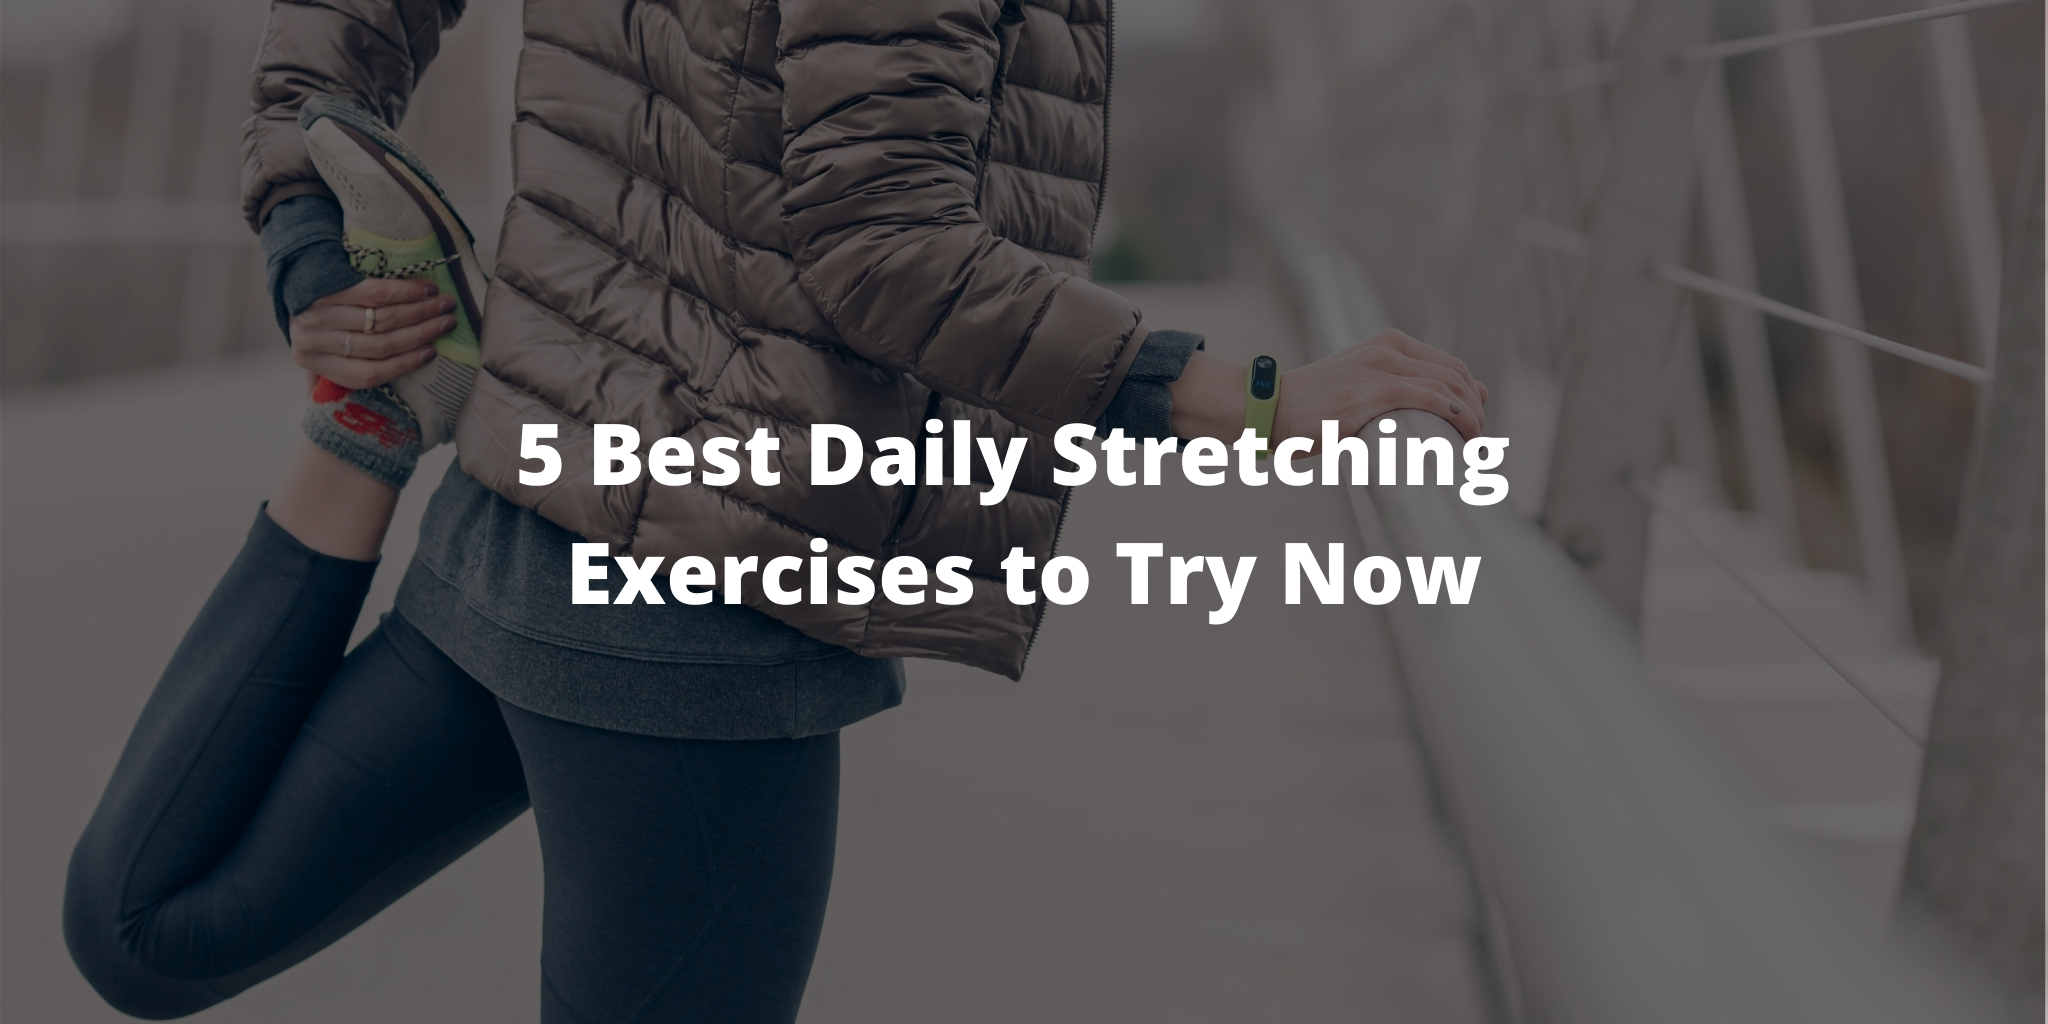 5 Best Daily Stretching Exercises to Try Now